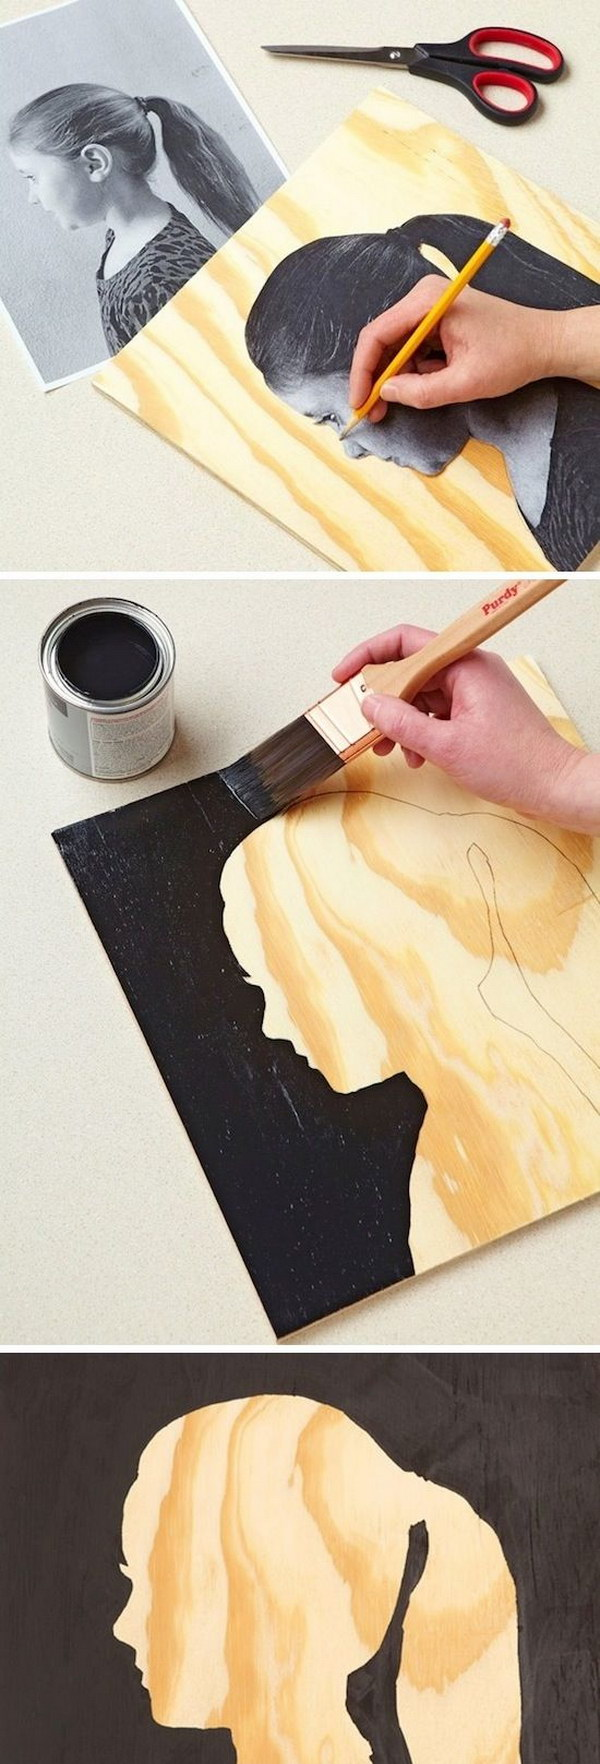 30 Awesome Wall Art Ideas & Tutorials - Hative